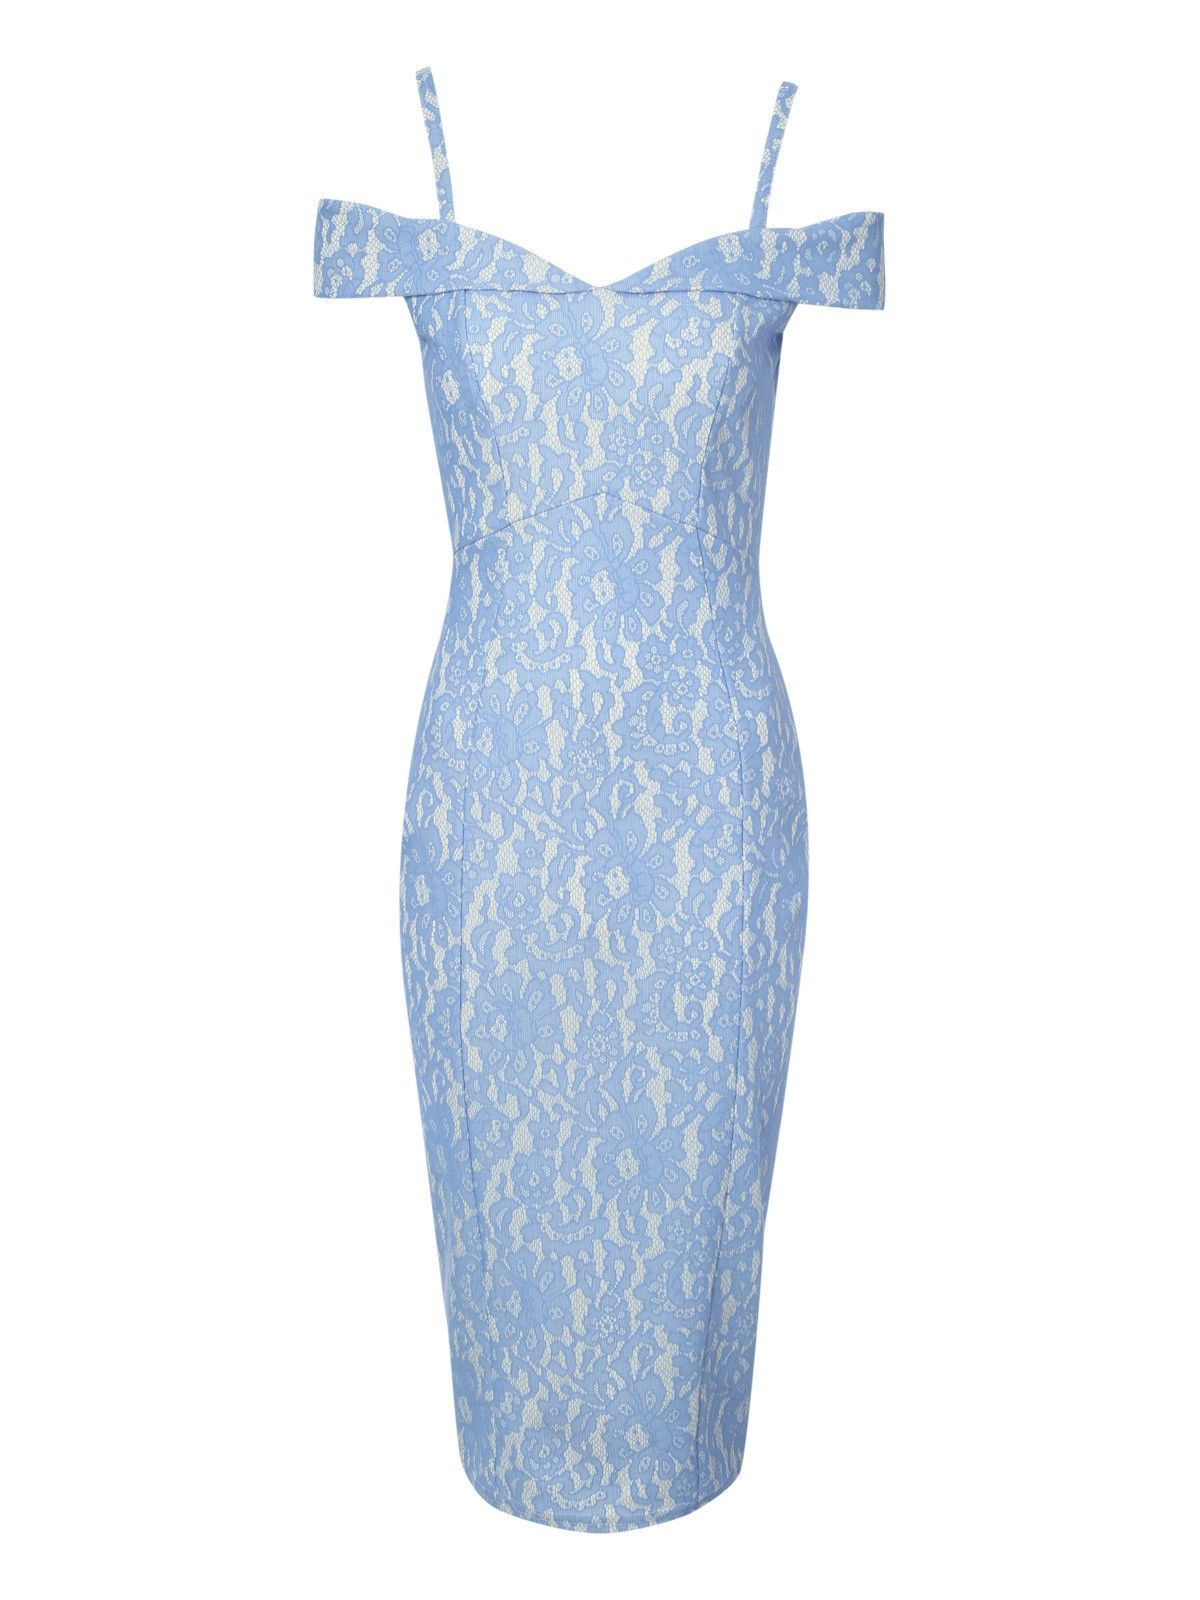 Bonded Lace Bardot Dress | Jane Norman | Dresses, Lace dress